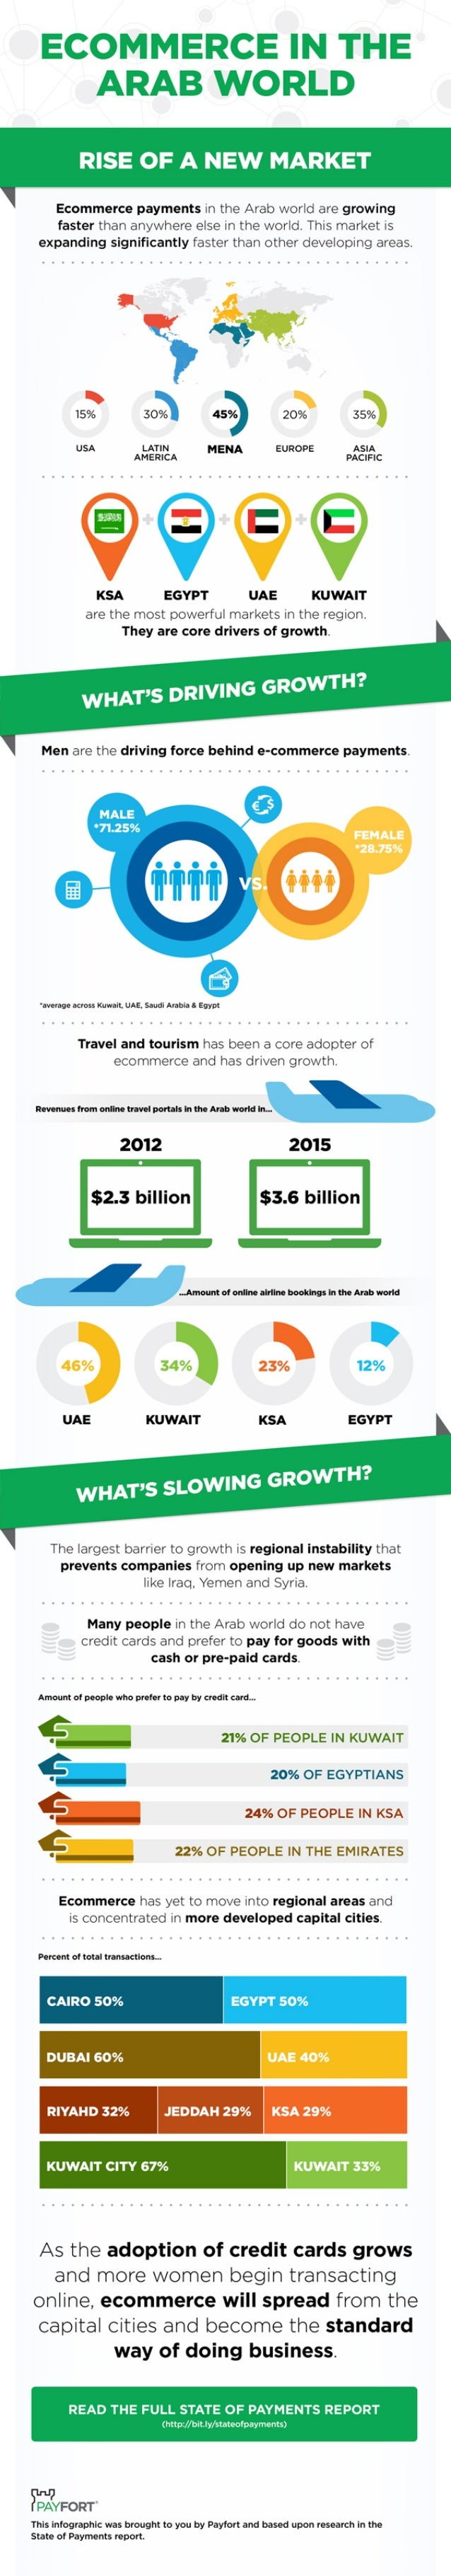 Ecommerce payments in the Arab world are growing faster than anywhere else in the world.  This market is expanding signifi...